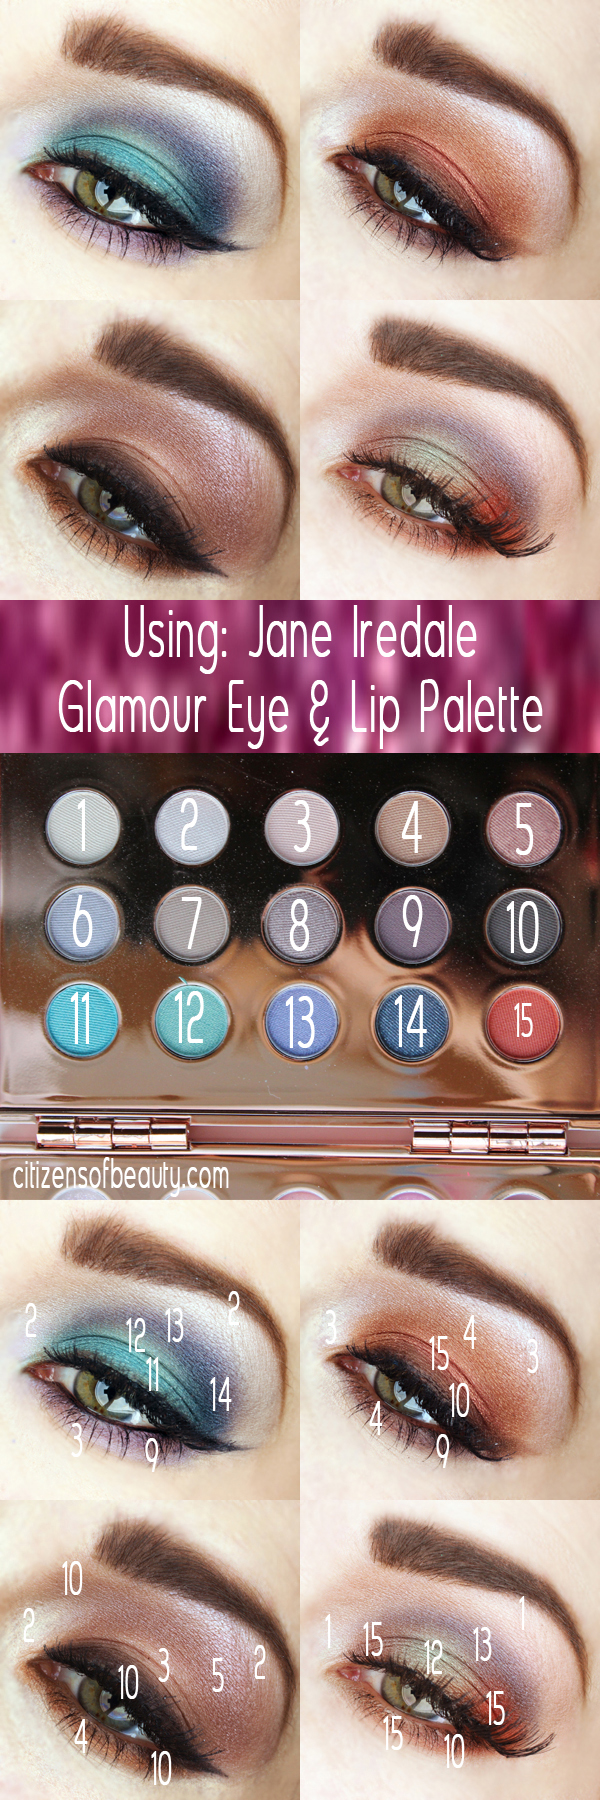 Jane_Iredale_Glamour_Eye_&_Lip_Holiday_Palette